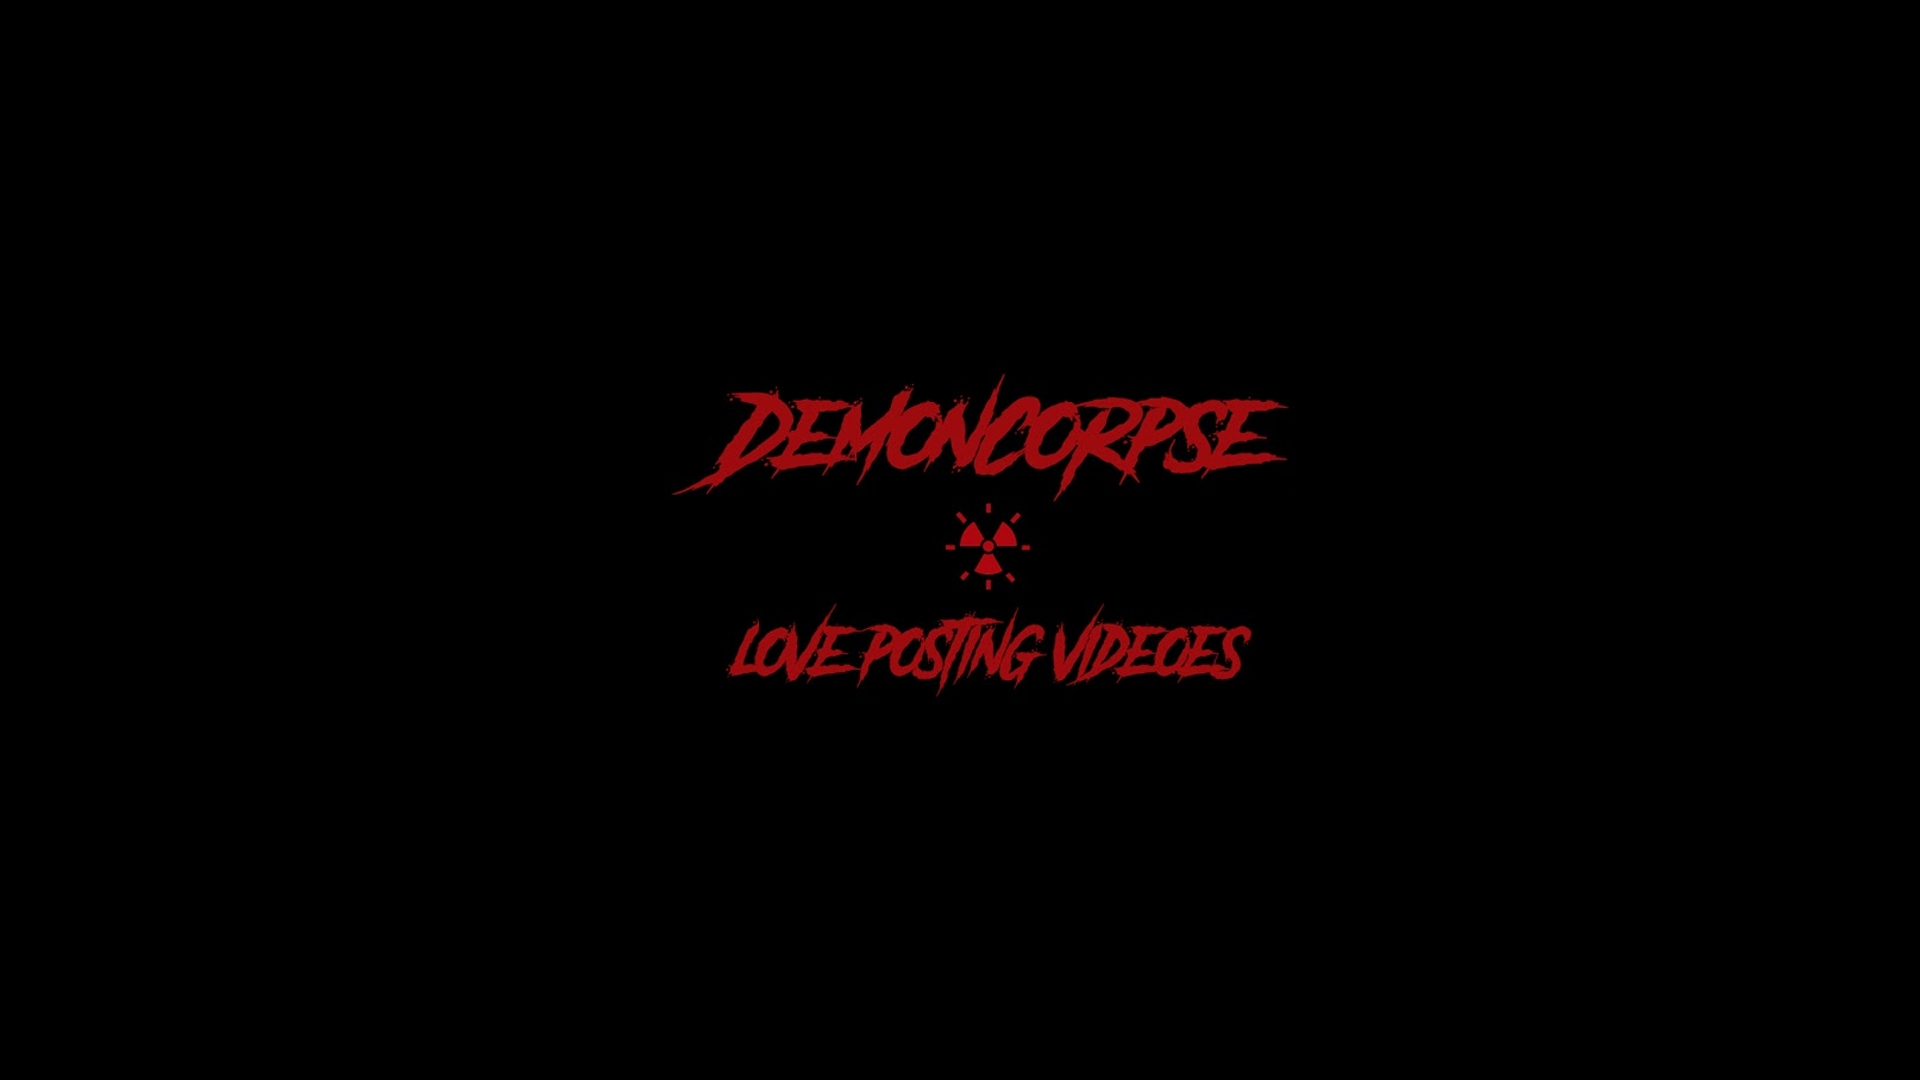 Demoncorpse4800 (@demoncorpse4800) Cover Image